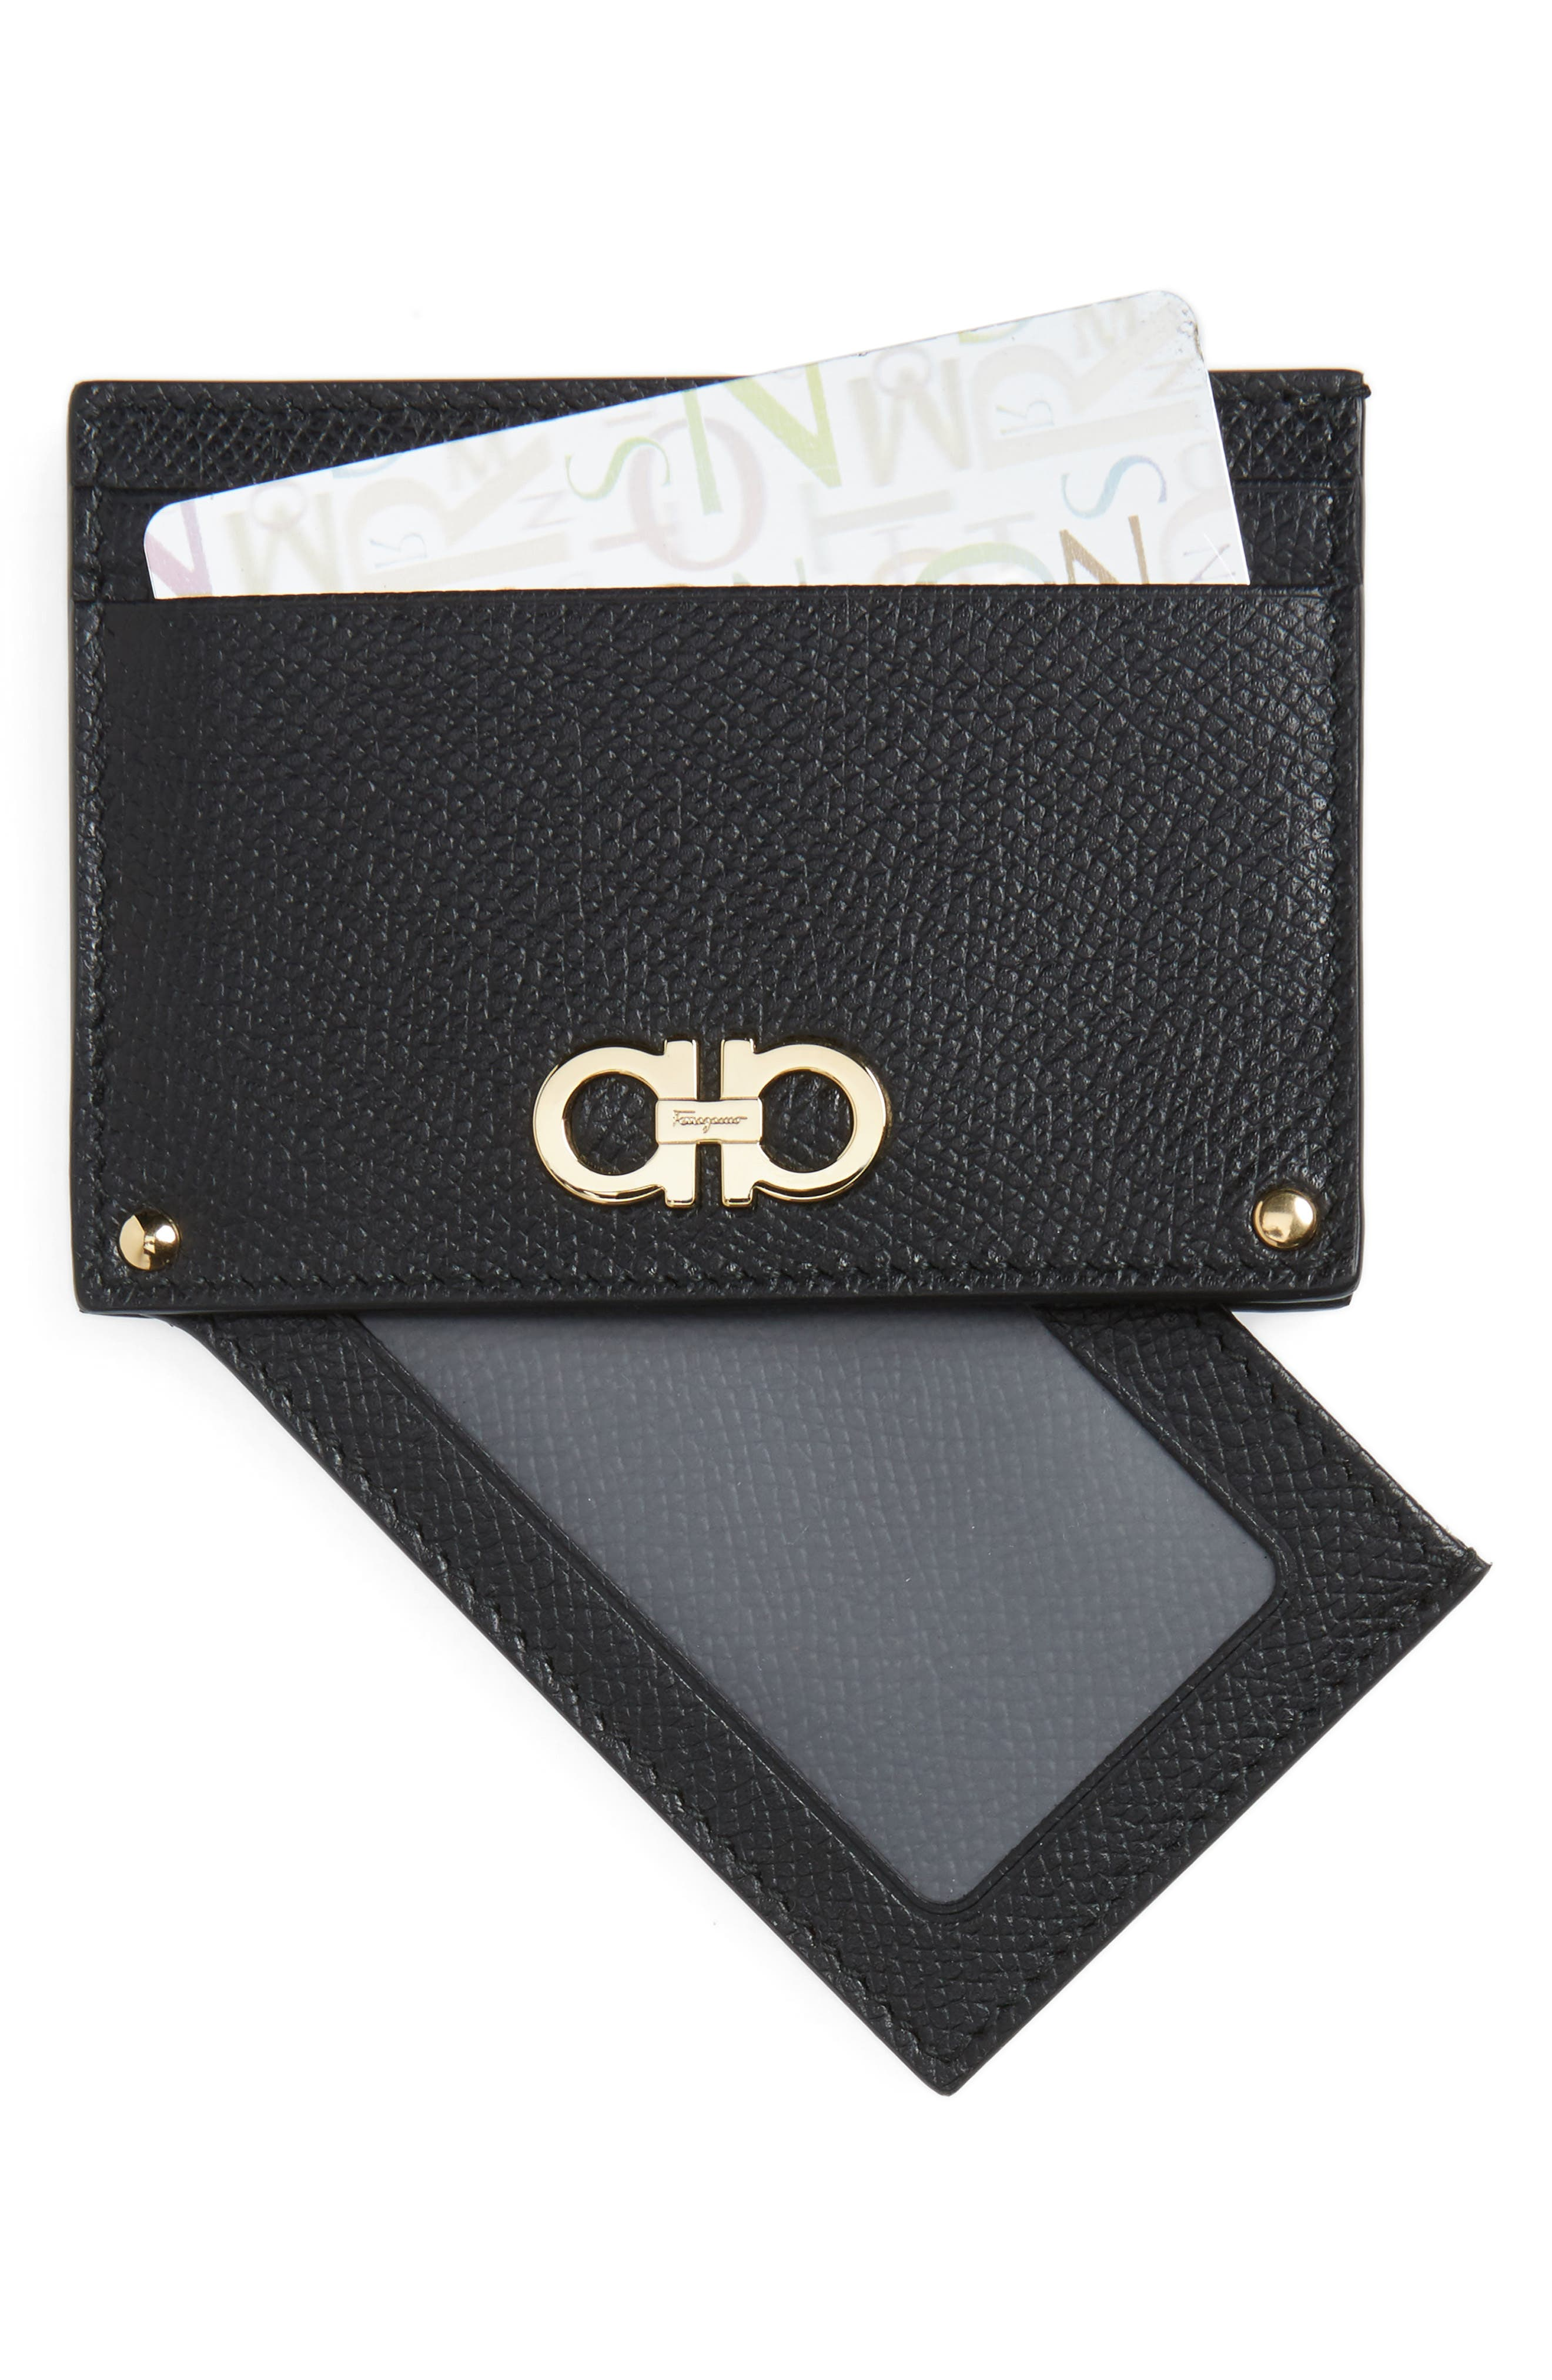 Salvatore Ferragamo Gancio Leather Card Case